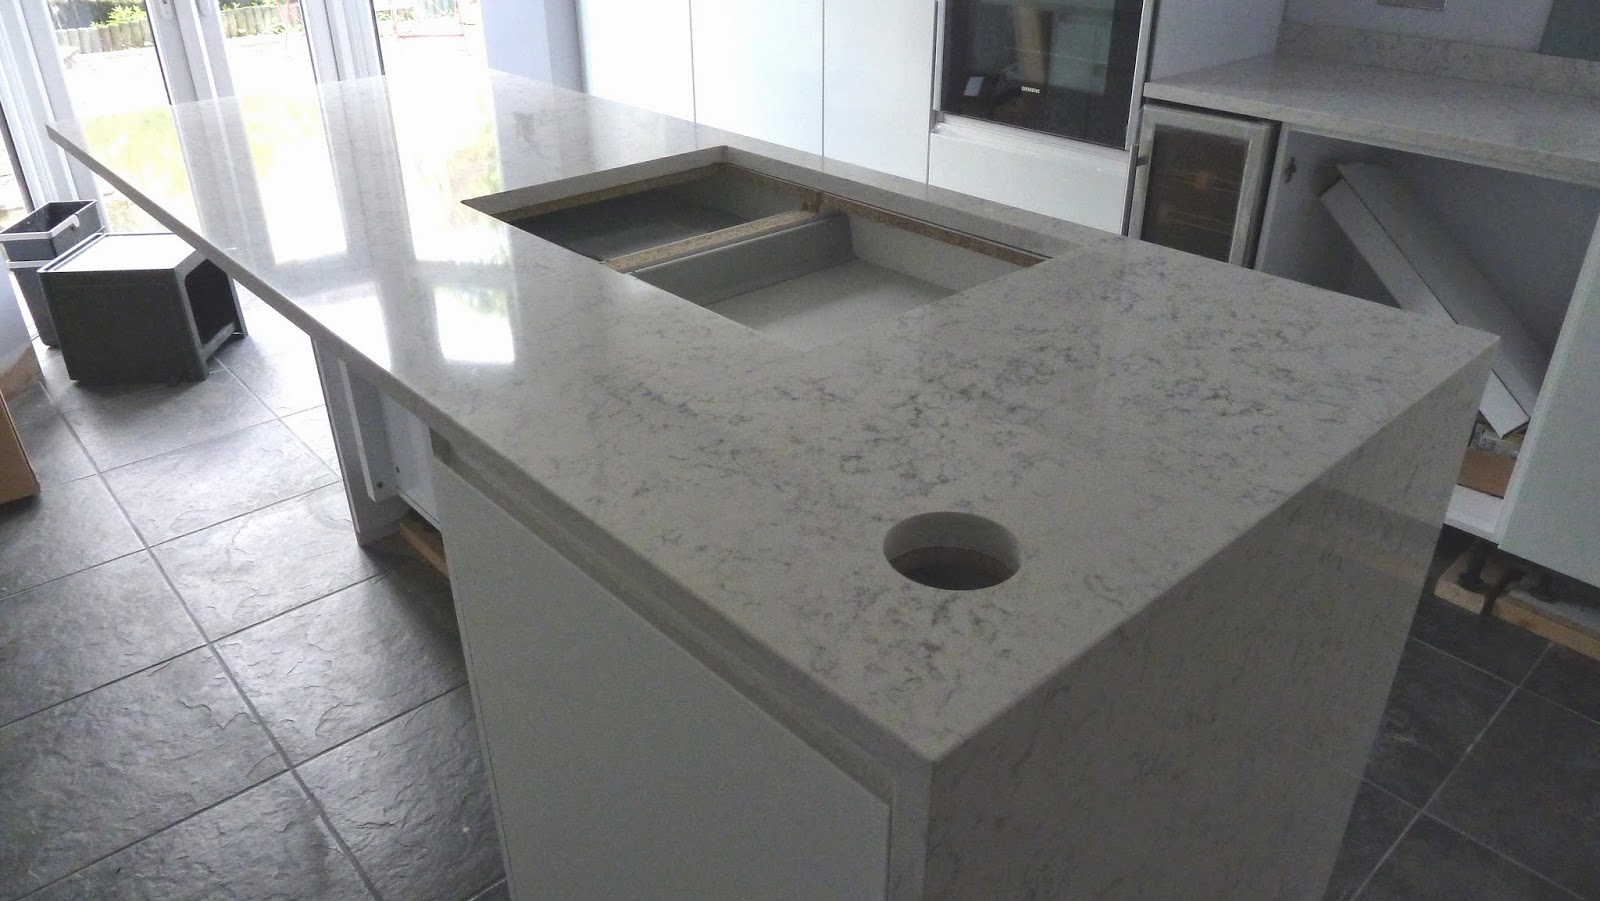 Kitchen island unit sink hob - Kitchen Island With Hole Cut Out For The Pop Up Sockets Amp Usb